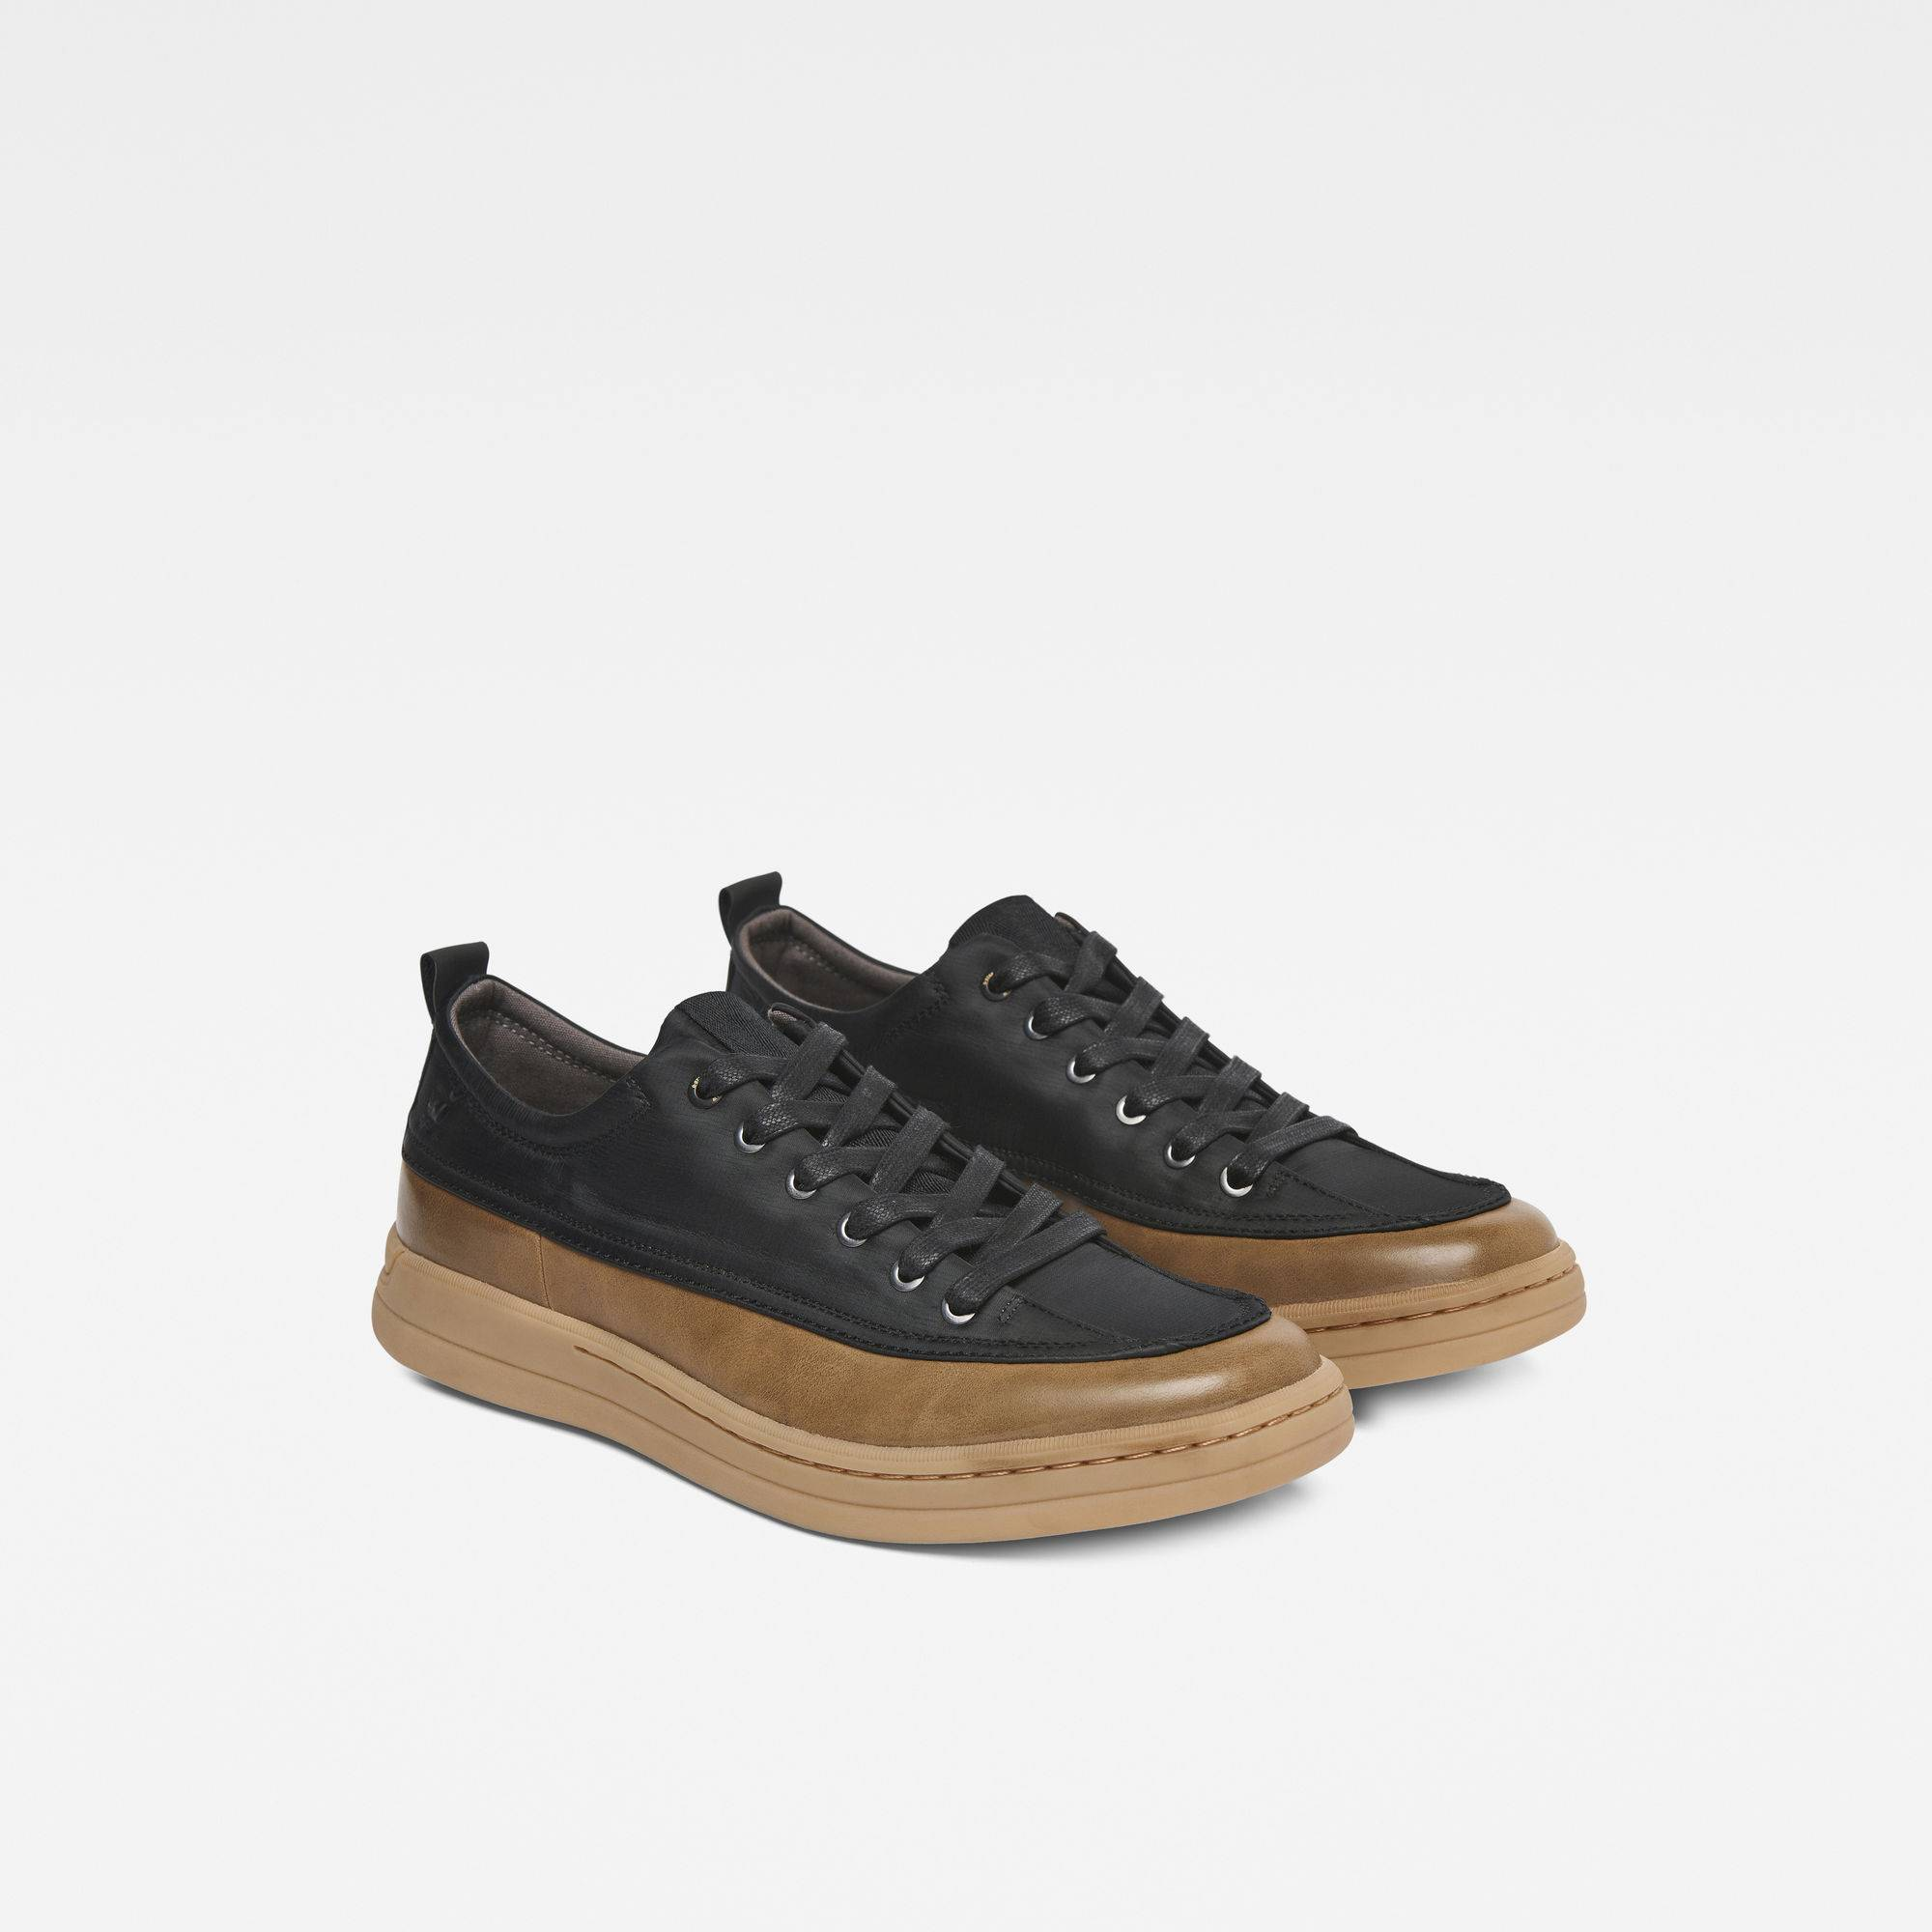 G-Star RAW Arc Low Sneakers